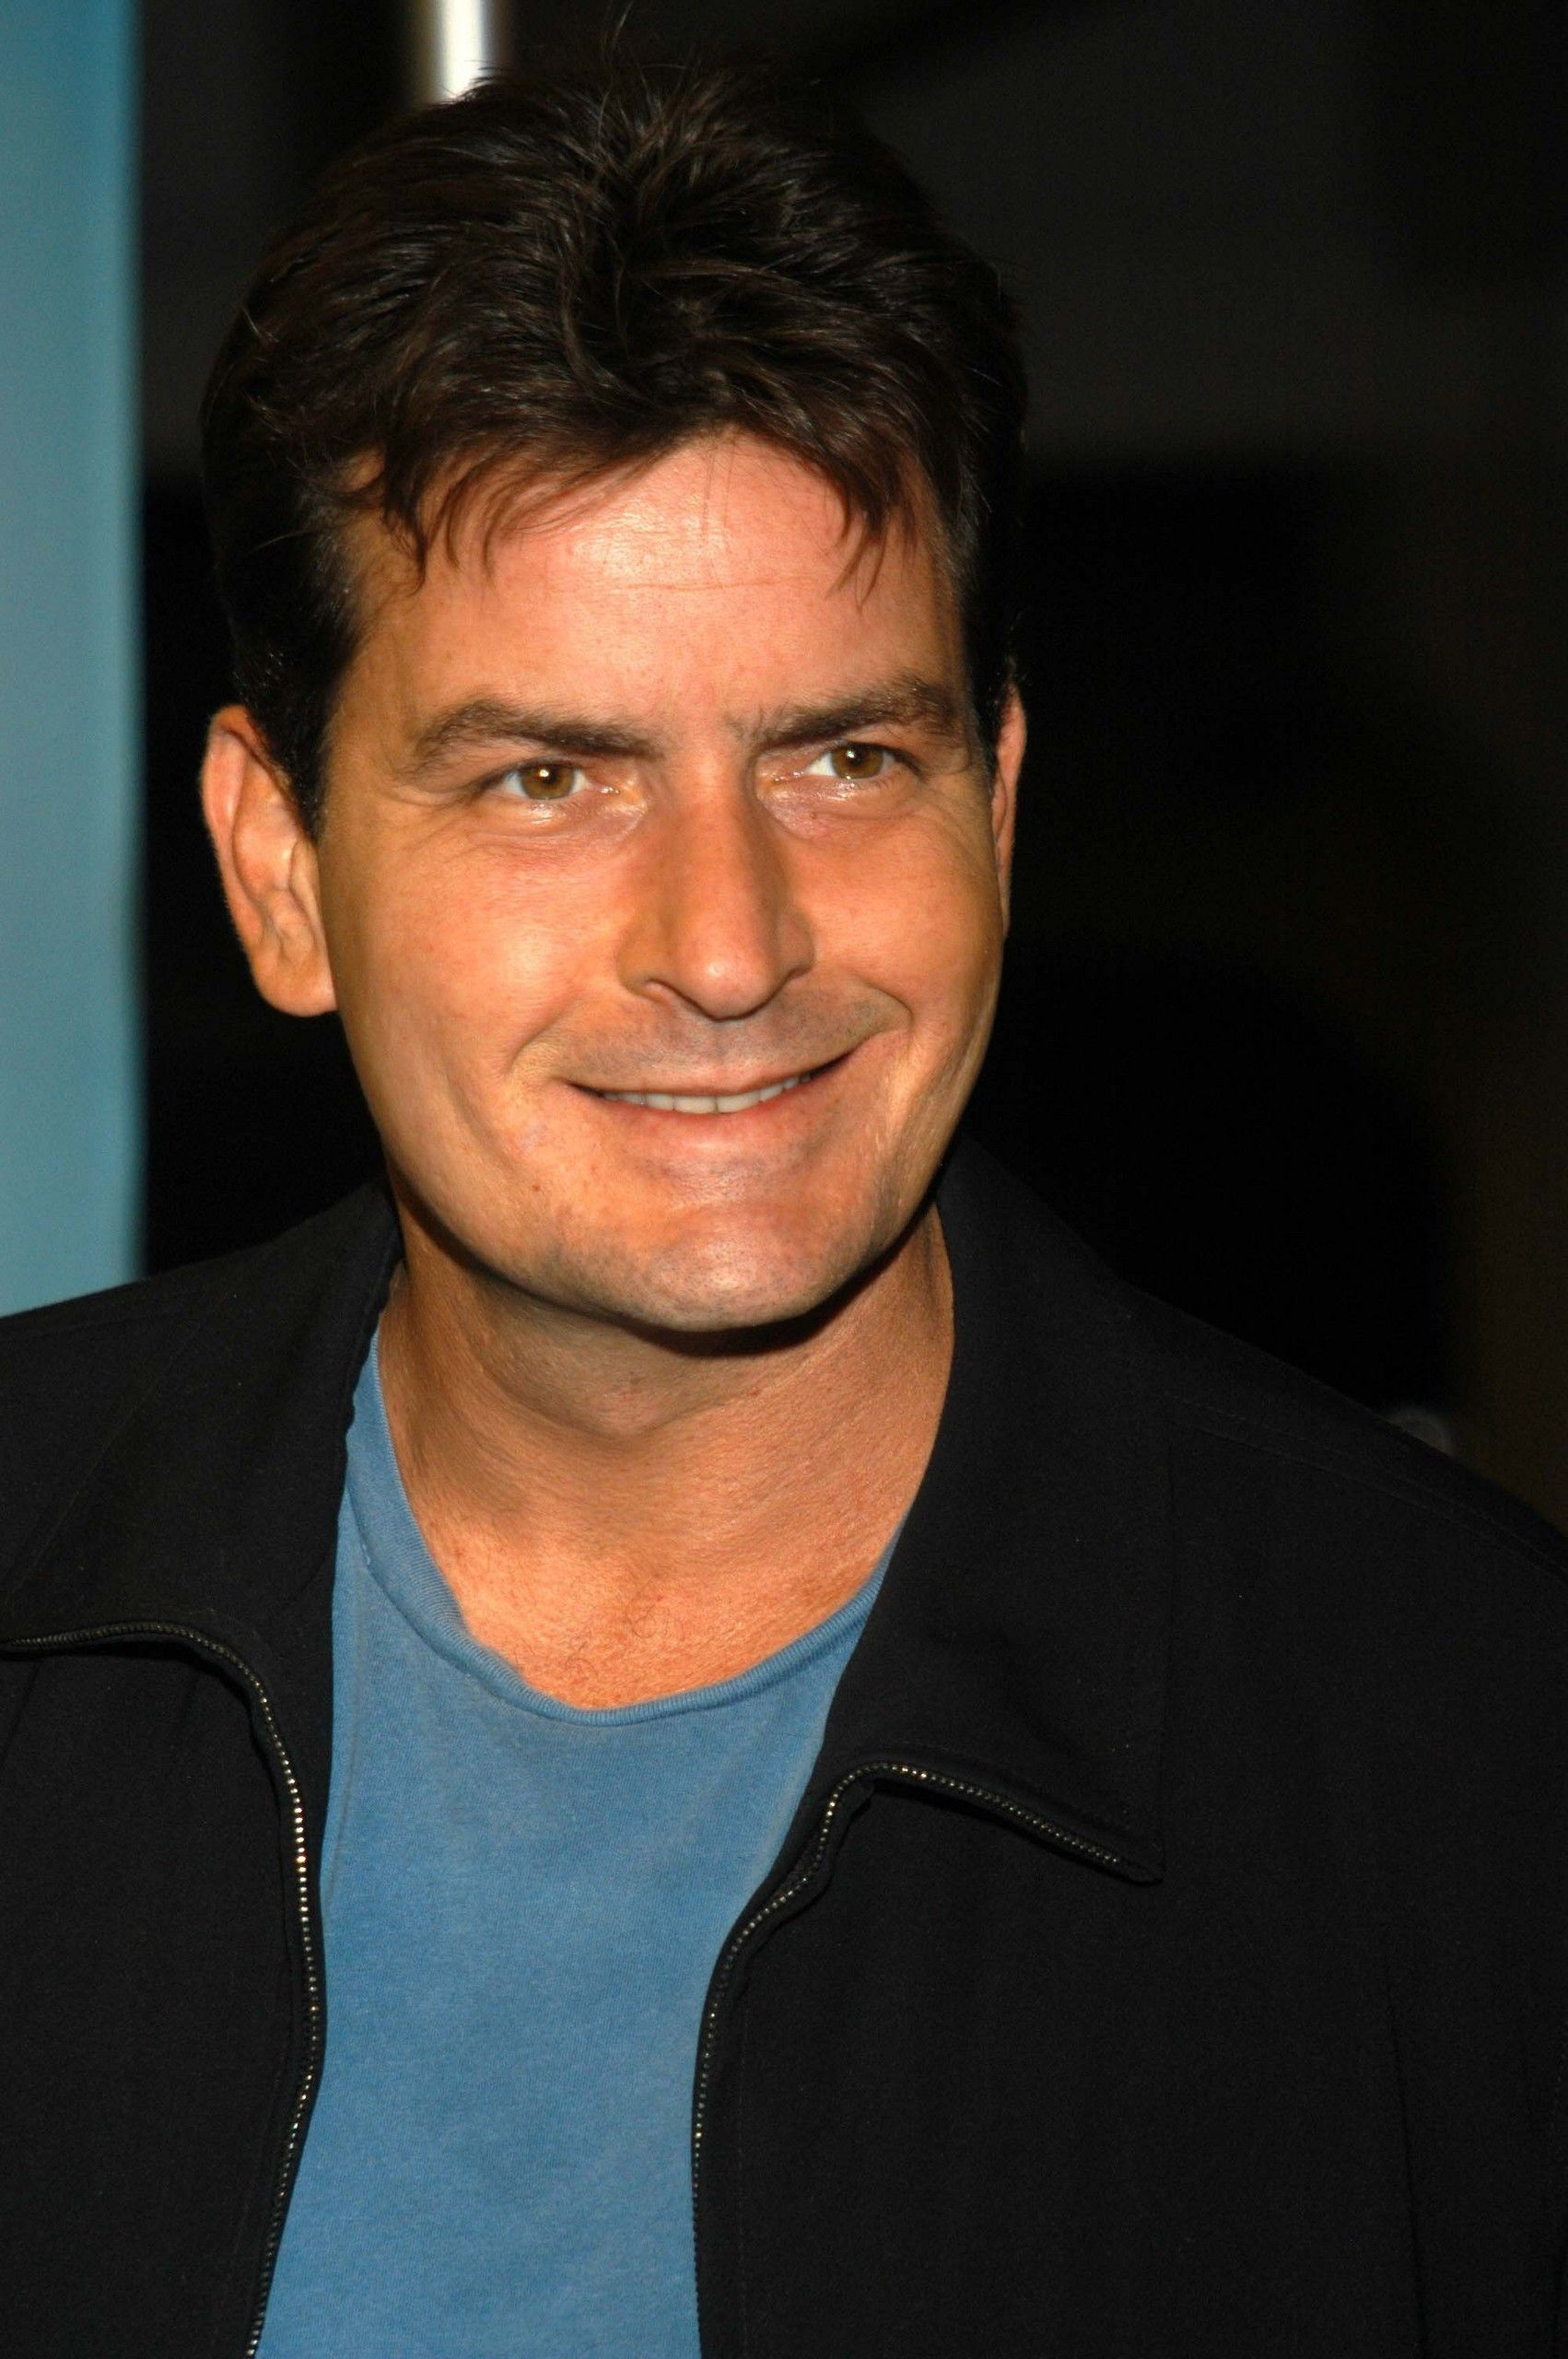 best ideas about charlie sheen dad charlie sheen 17 best ideas about charlie sheen dad charlie sheen father emilio estevez charlie sheen and charlie sheen real